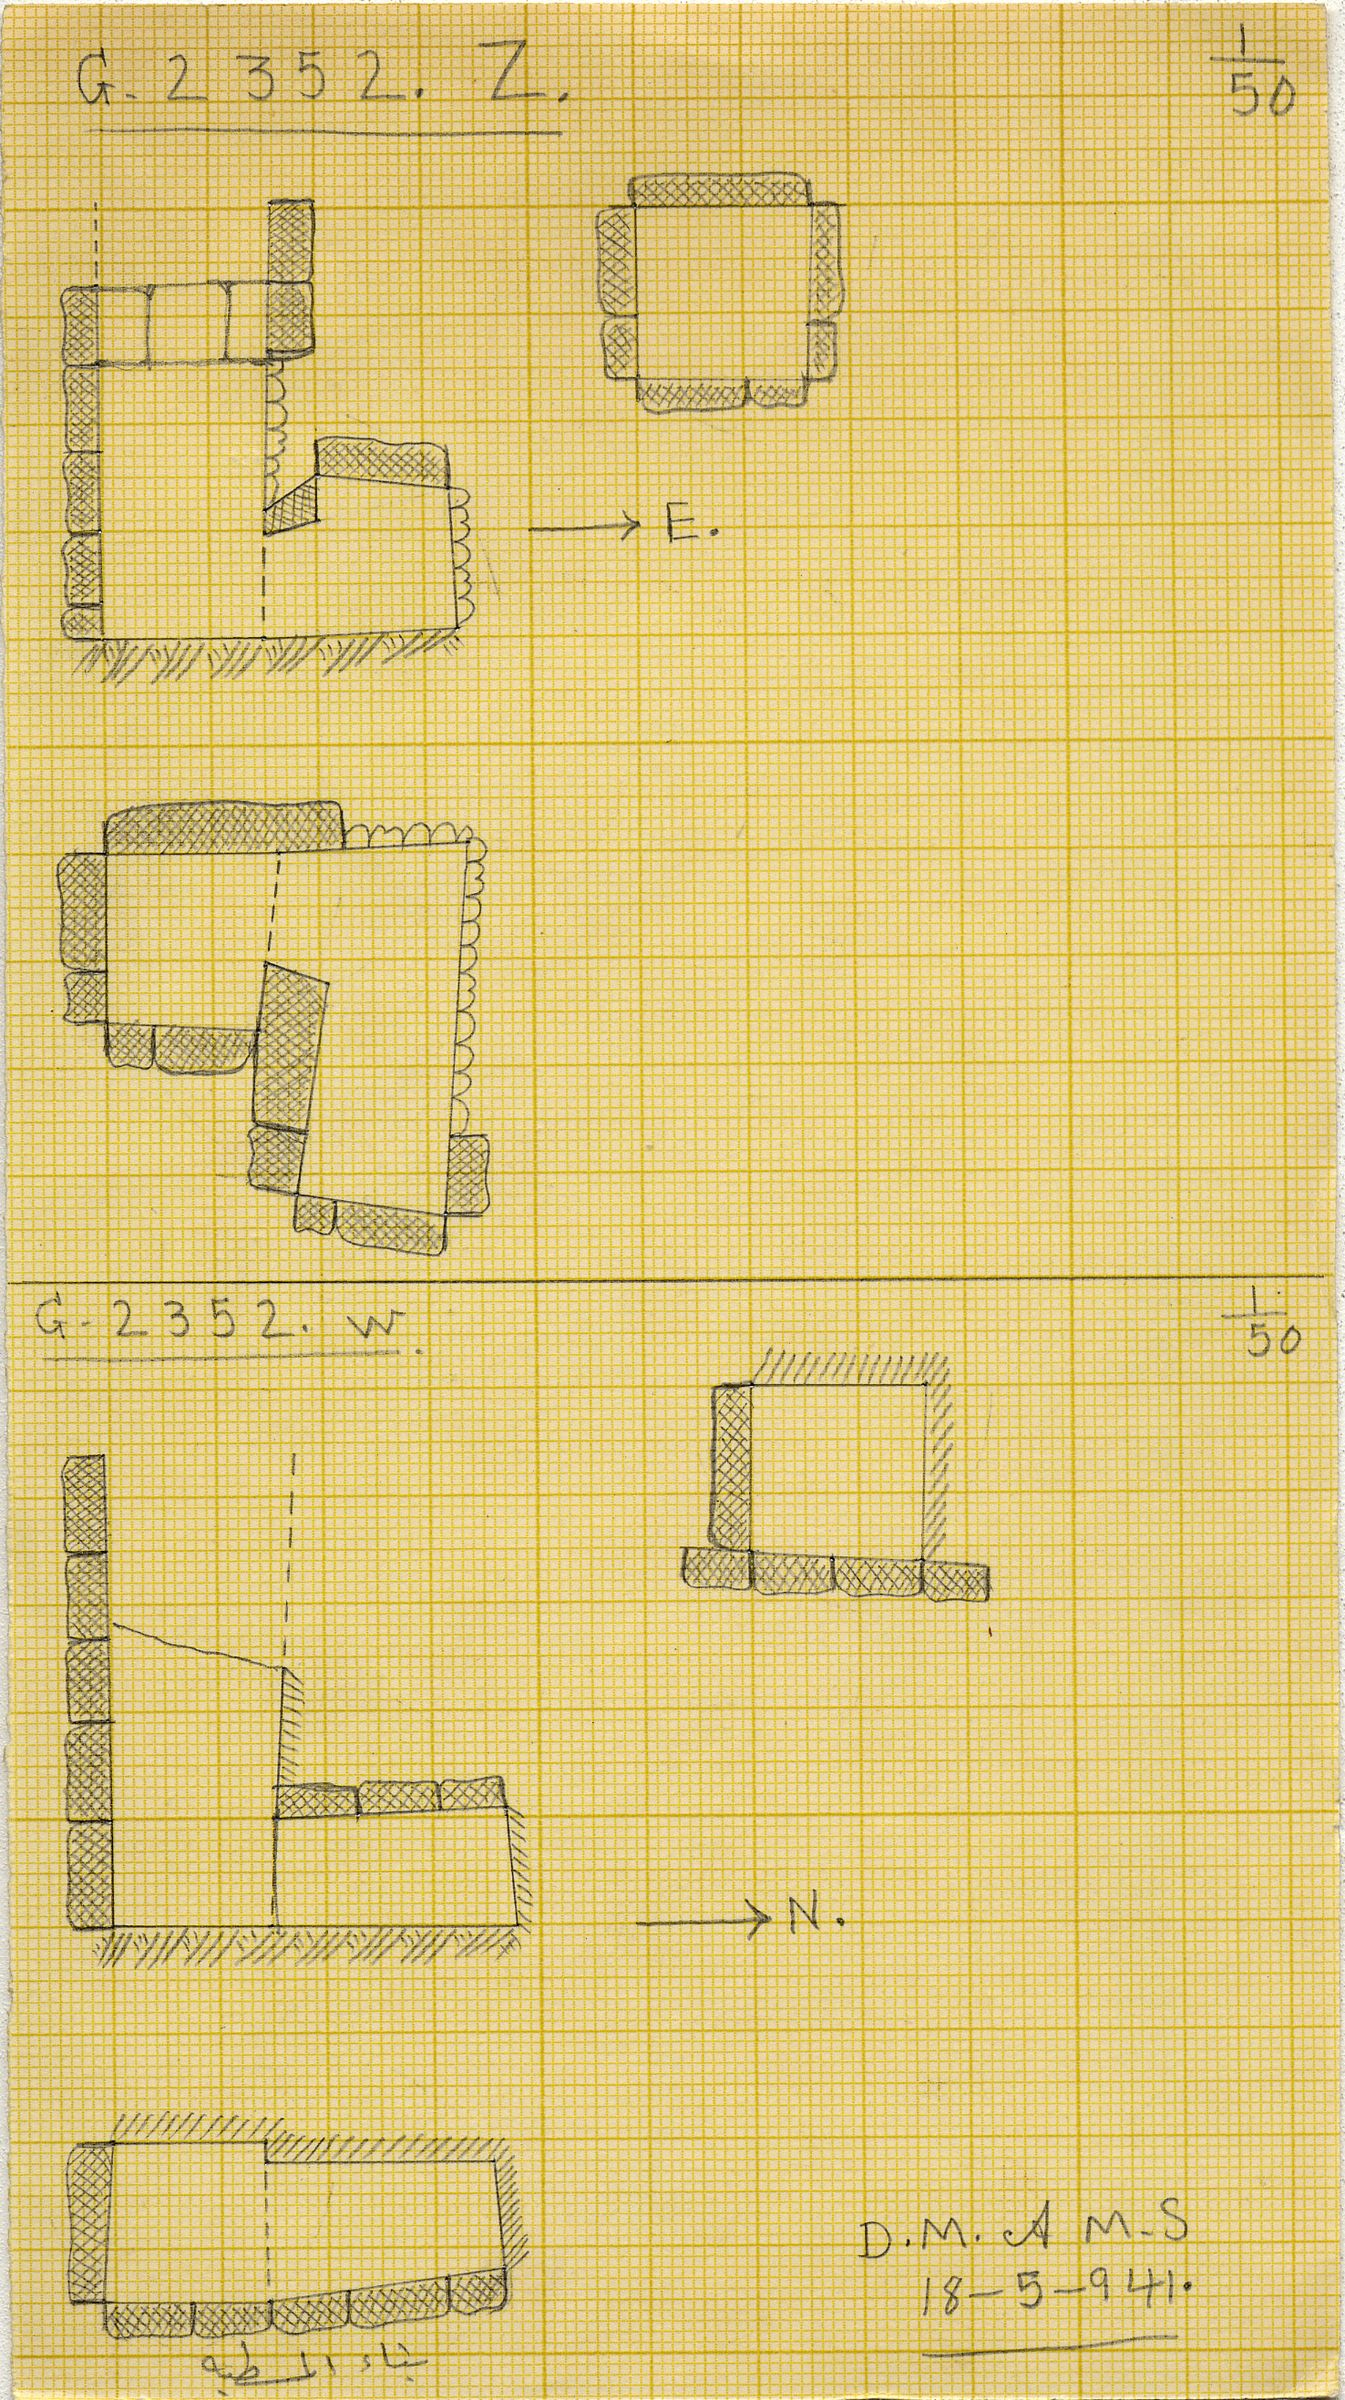 Maps and plans: G 2352, Shaft W and Z